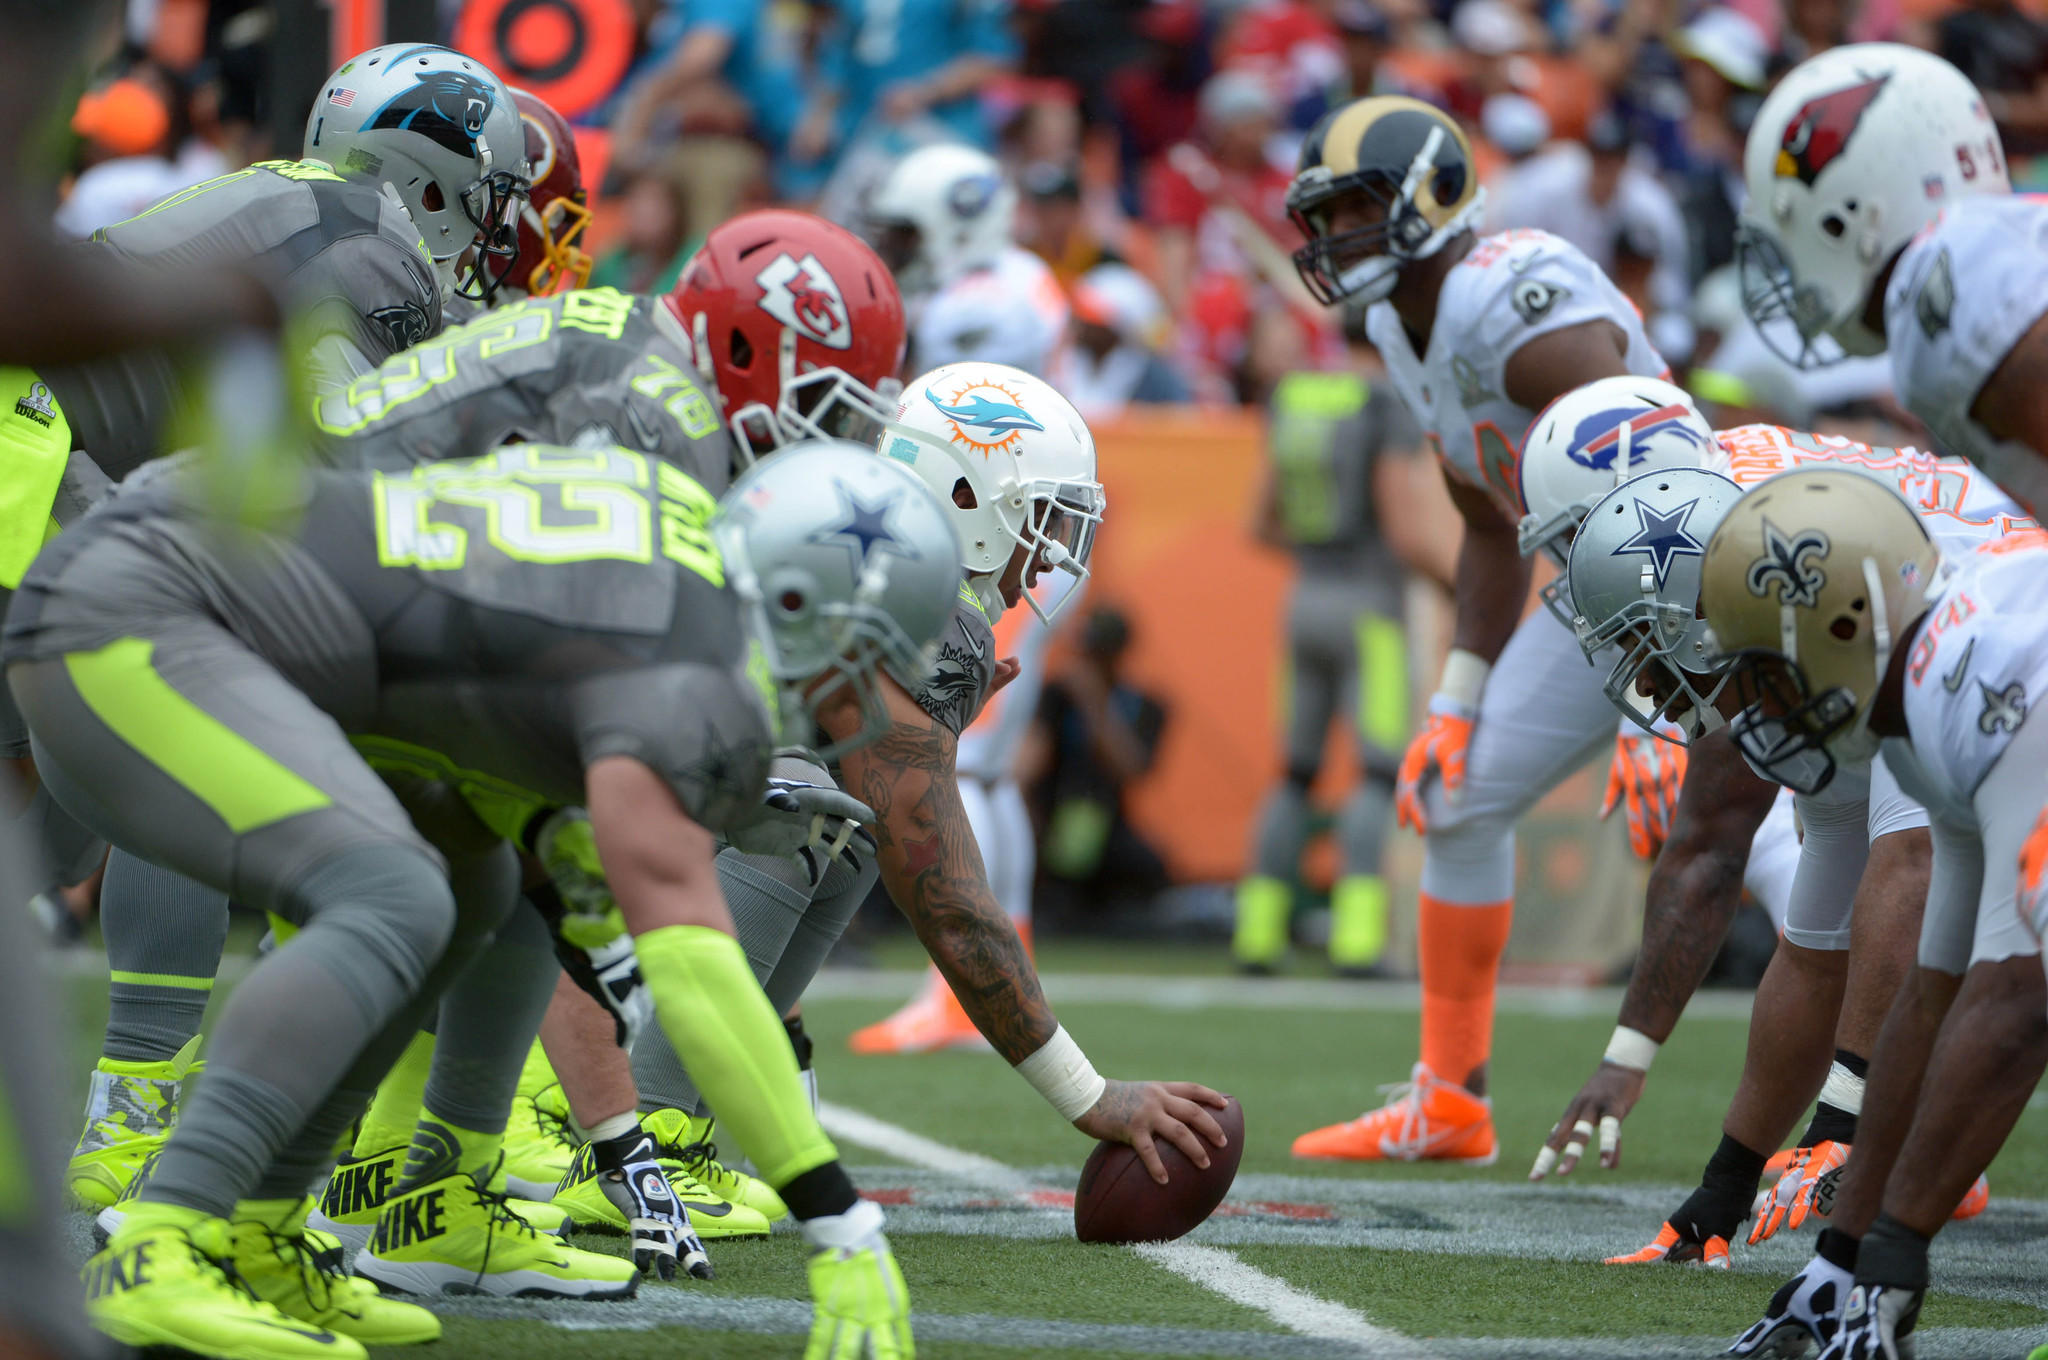 General view of the line of scrimmage as Team Sanders center Mike Pouncey of the Miami Dolphins snaps the ball during the 2014 Pro Bowl.